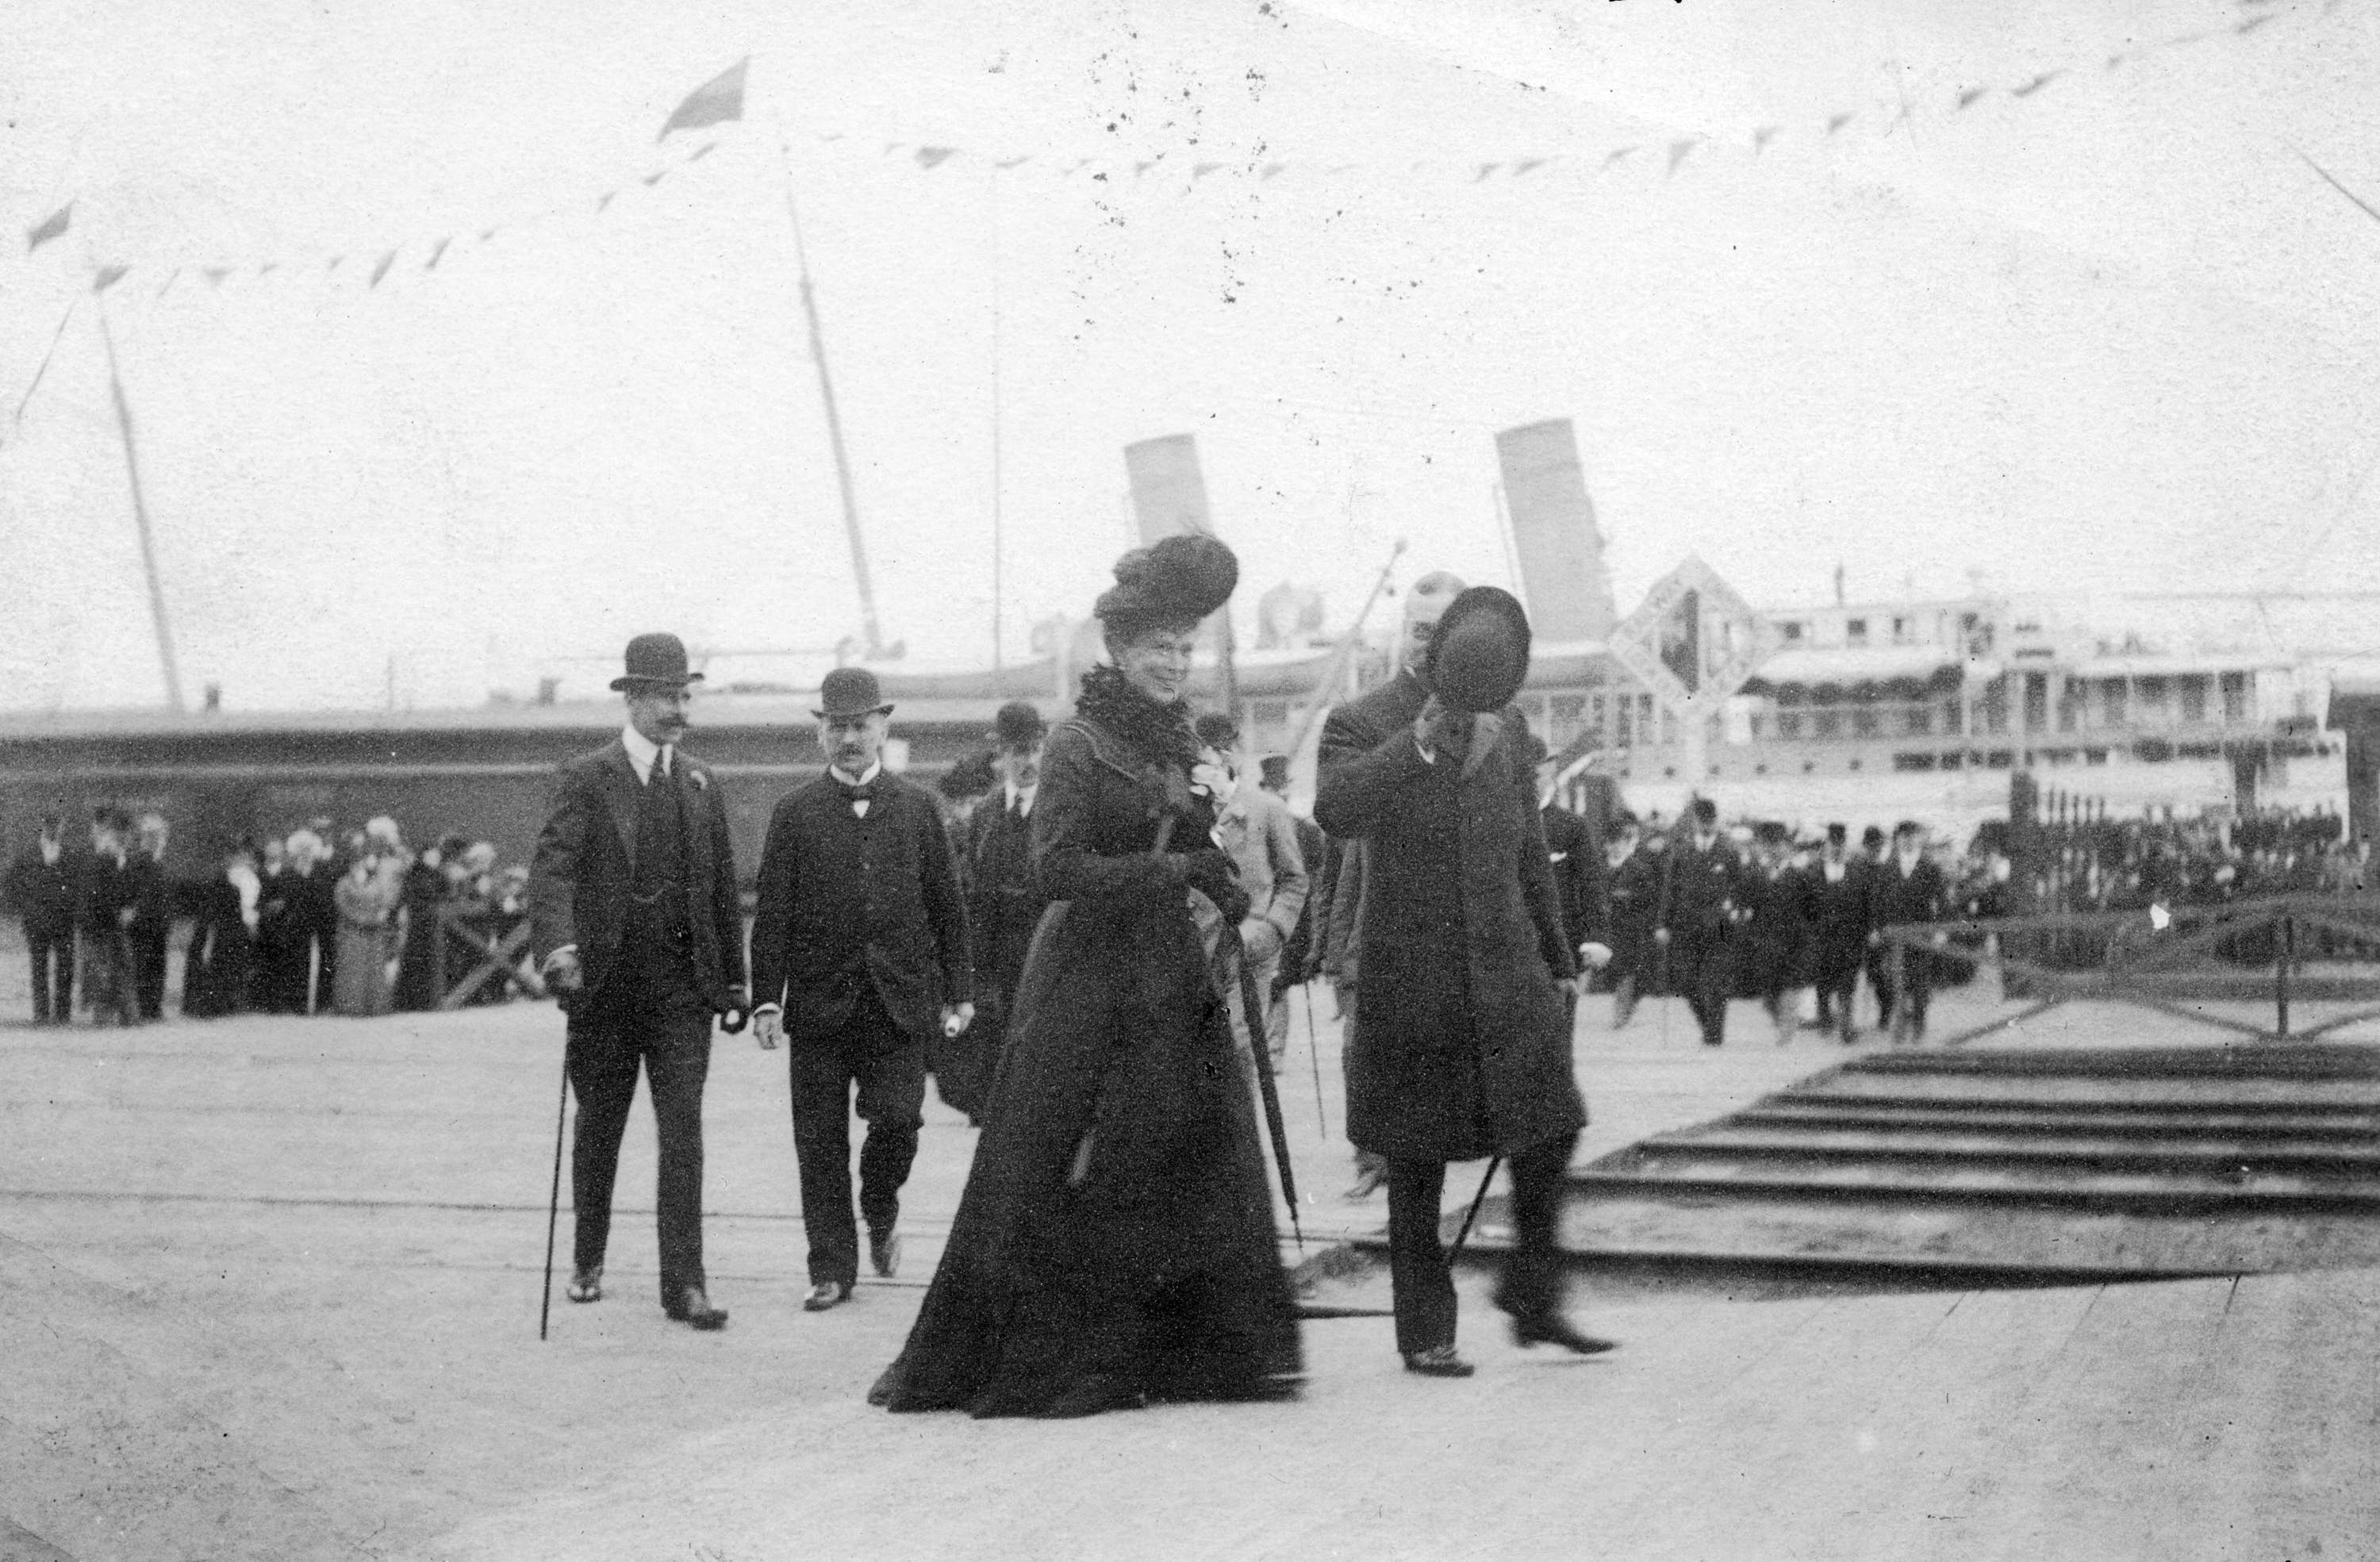 The Duke and Duchess of Cornwall and York on dock heading for C.P.R. station in 1901 (Public domain)